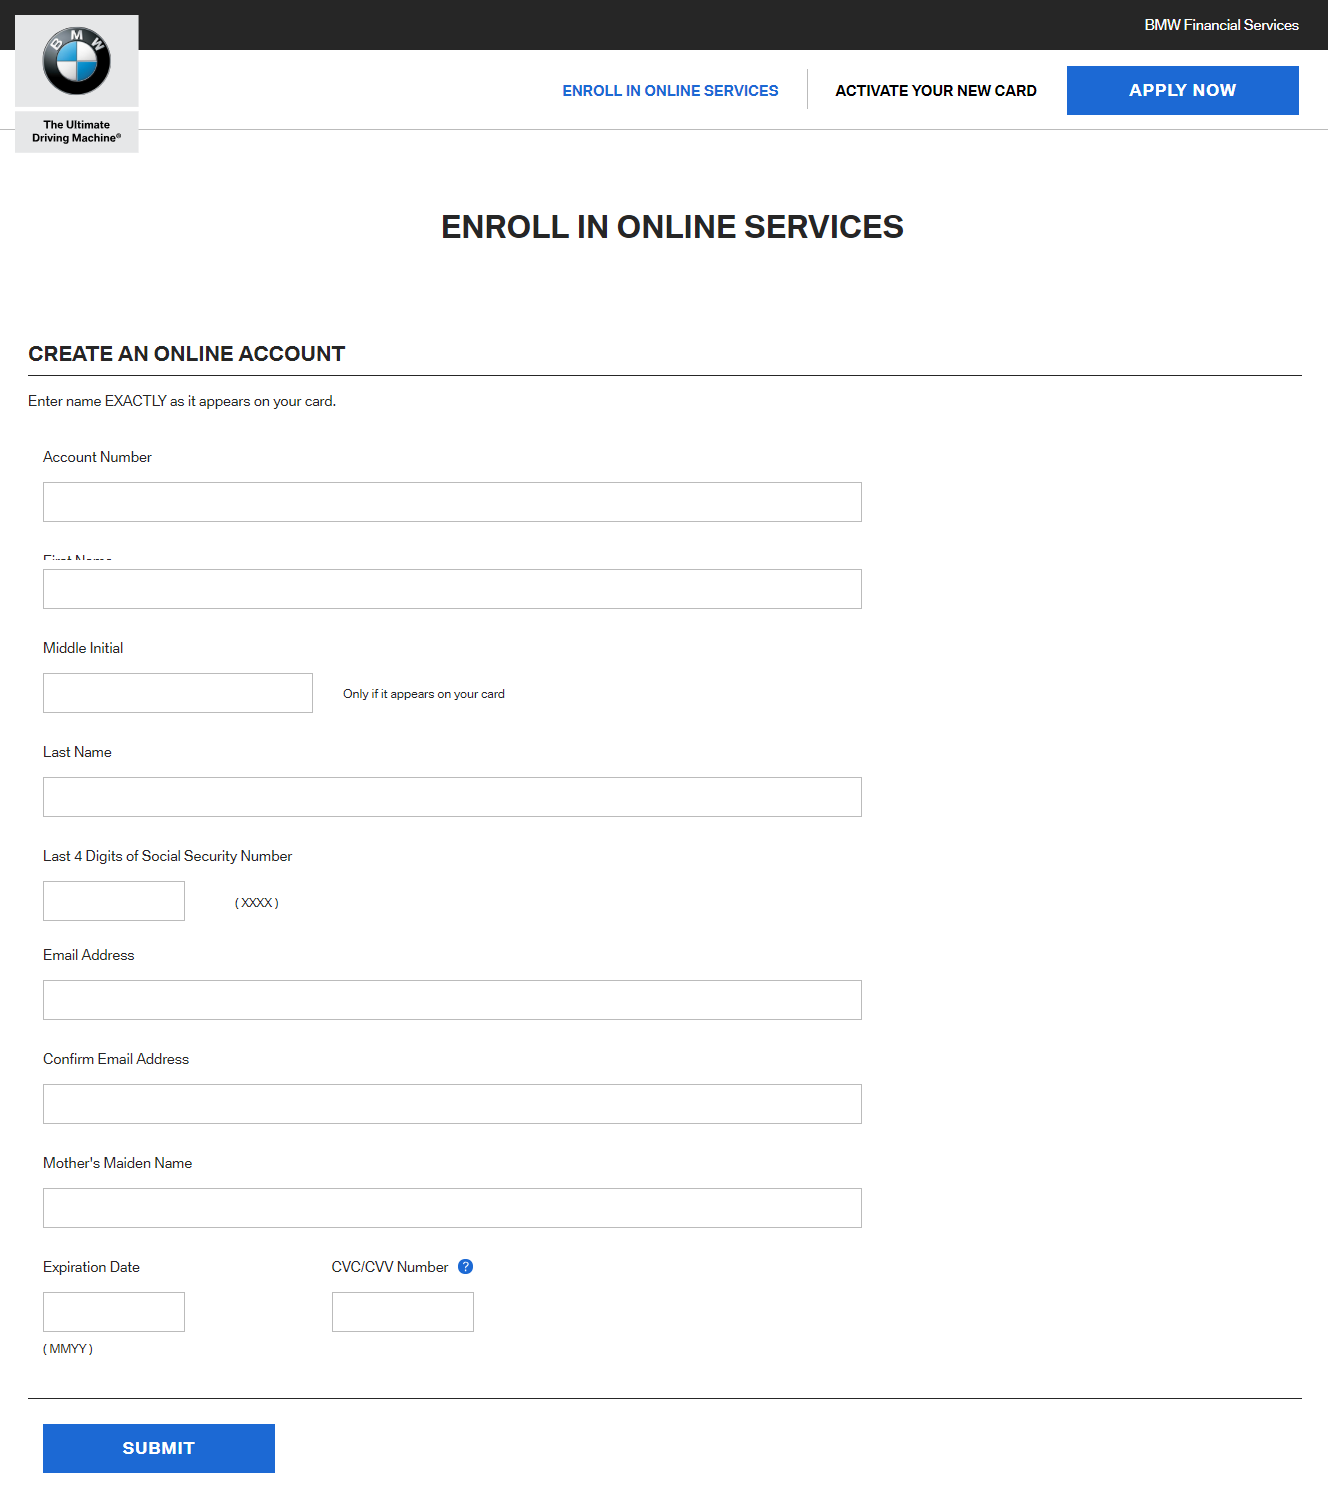 Enroll in Online Services